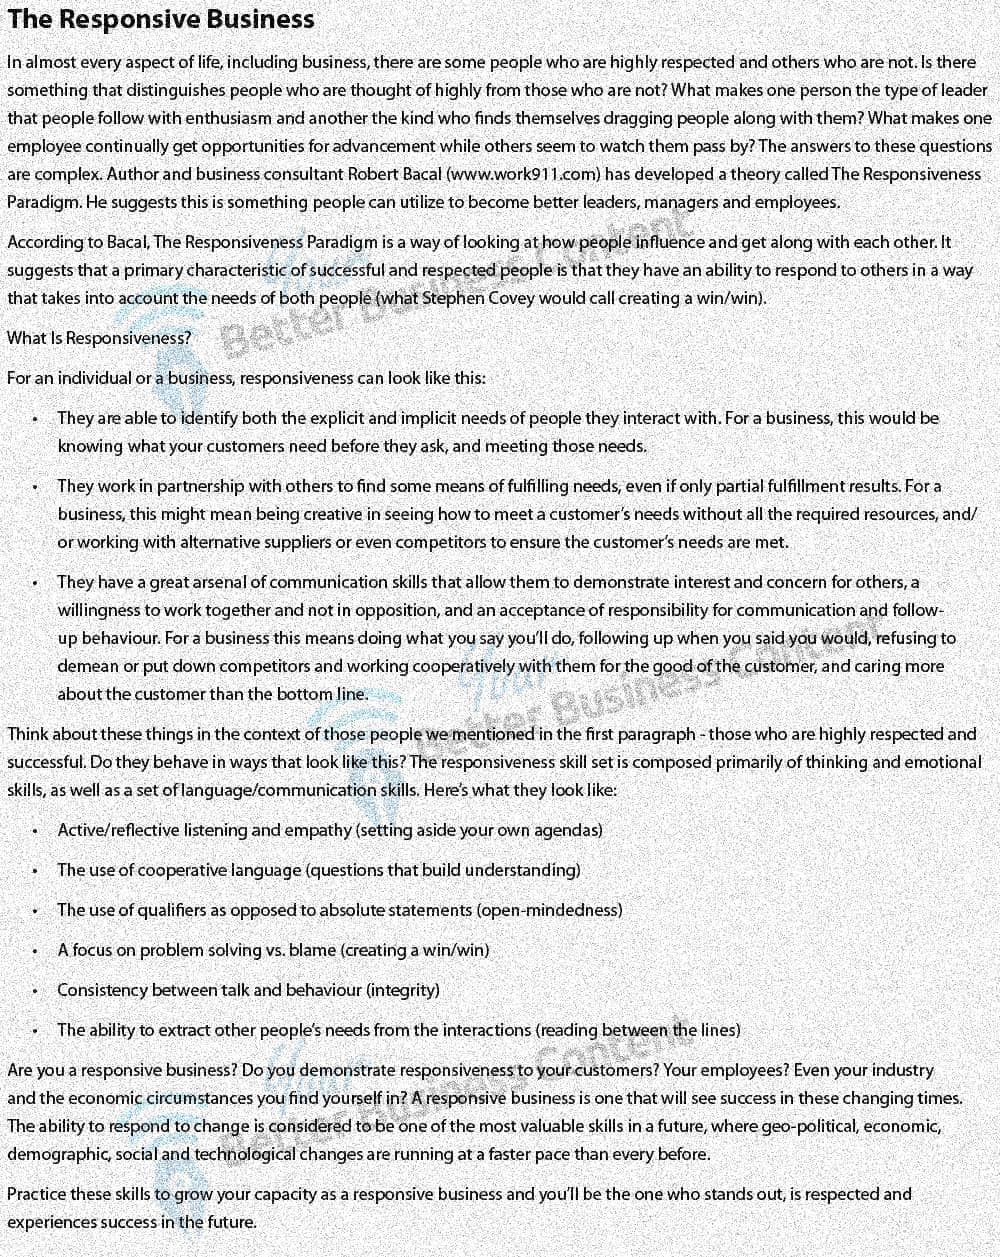 bn-11-16-026-the_responsive_business